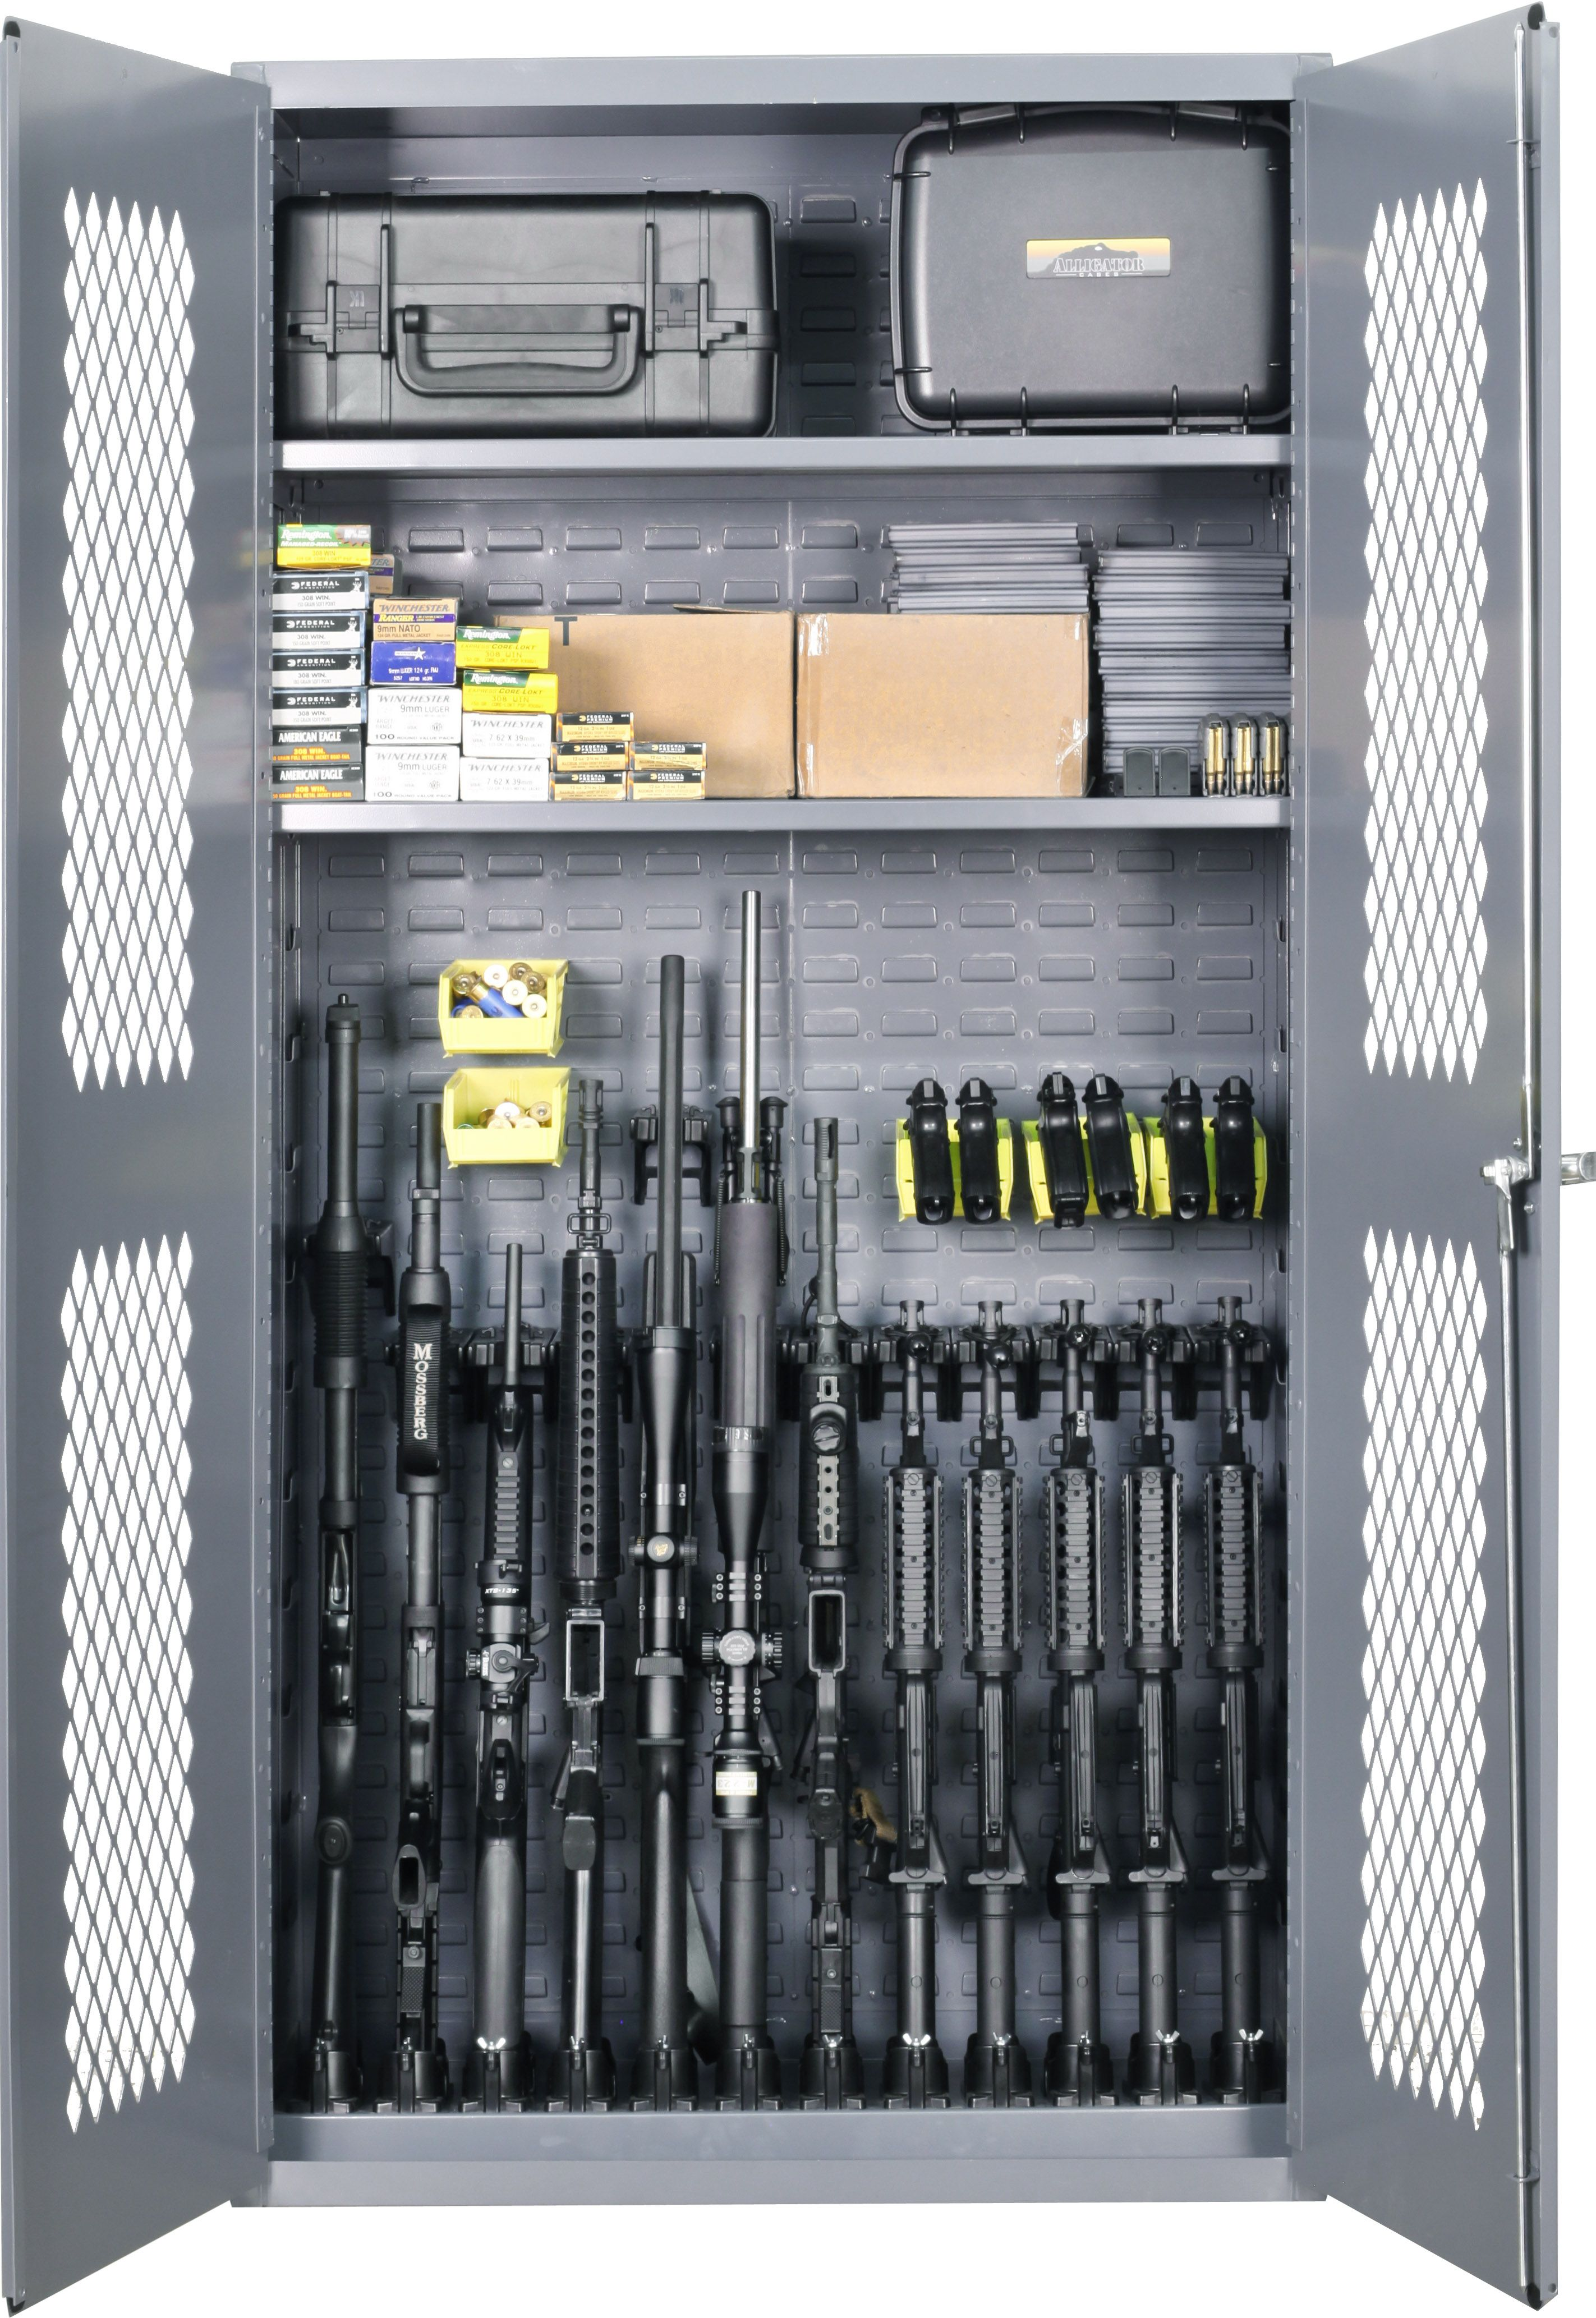 One weapon cabinet. Unlimited configurations. | Military Firearm ...